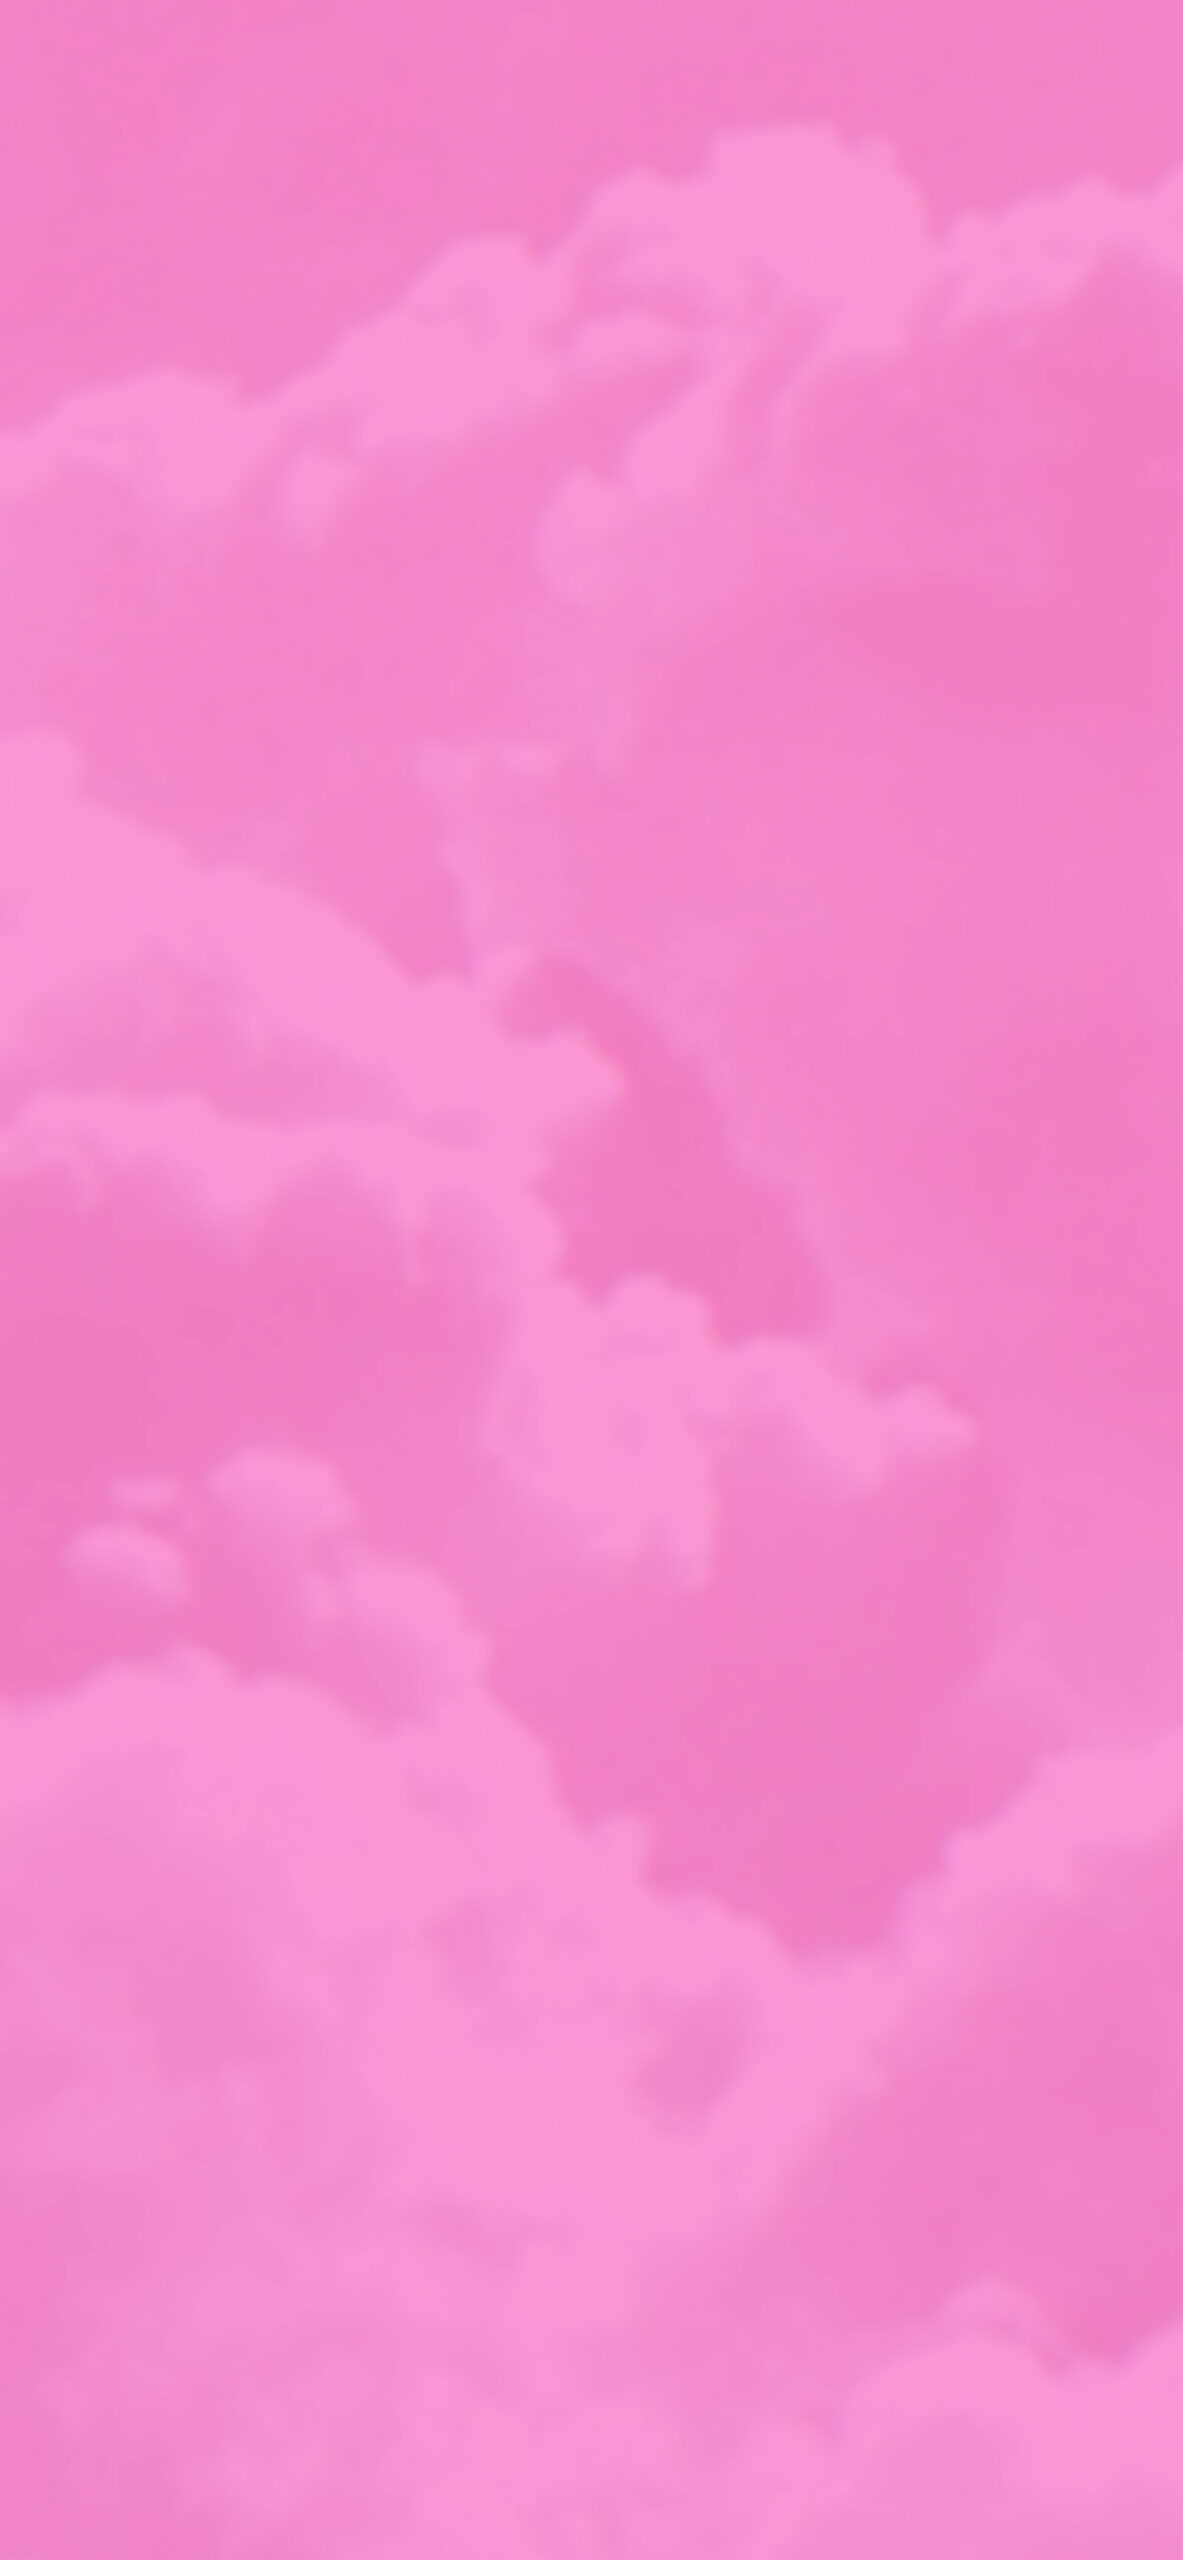 pink aesthetic think happy thoughts backgroynd 2